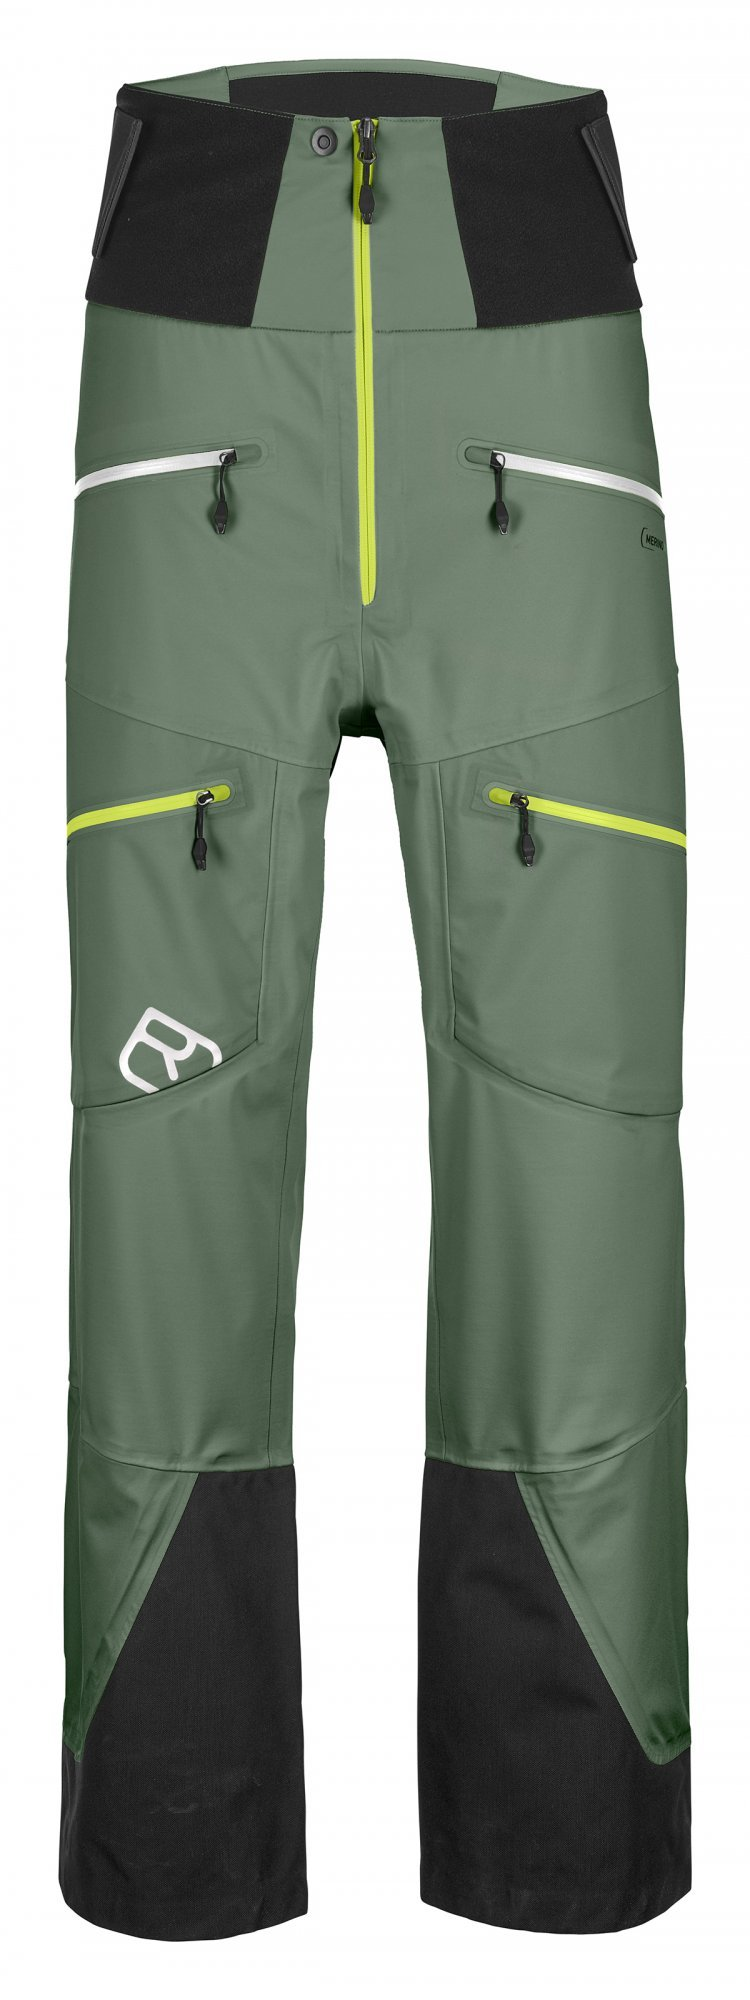 Ortovox 3L Guardian Shell pants, green forest